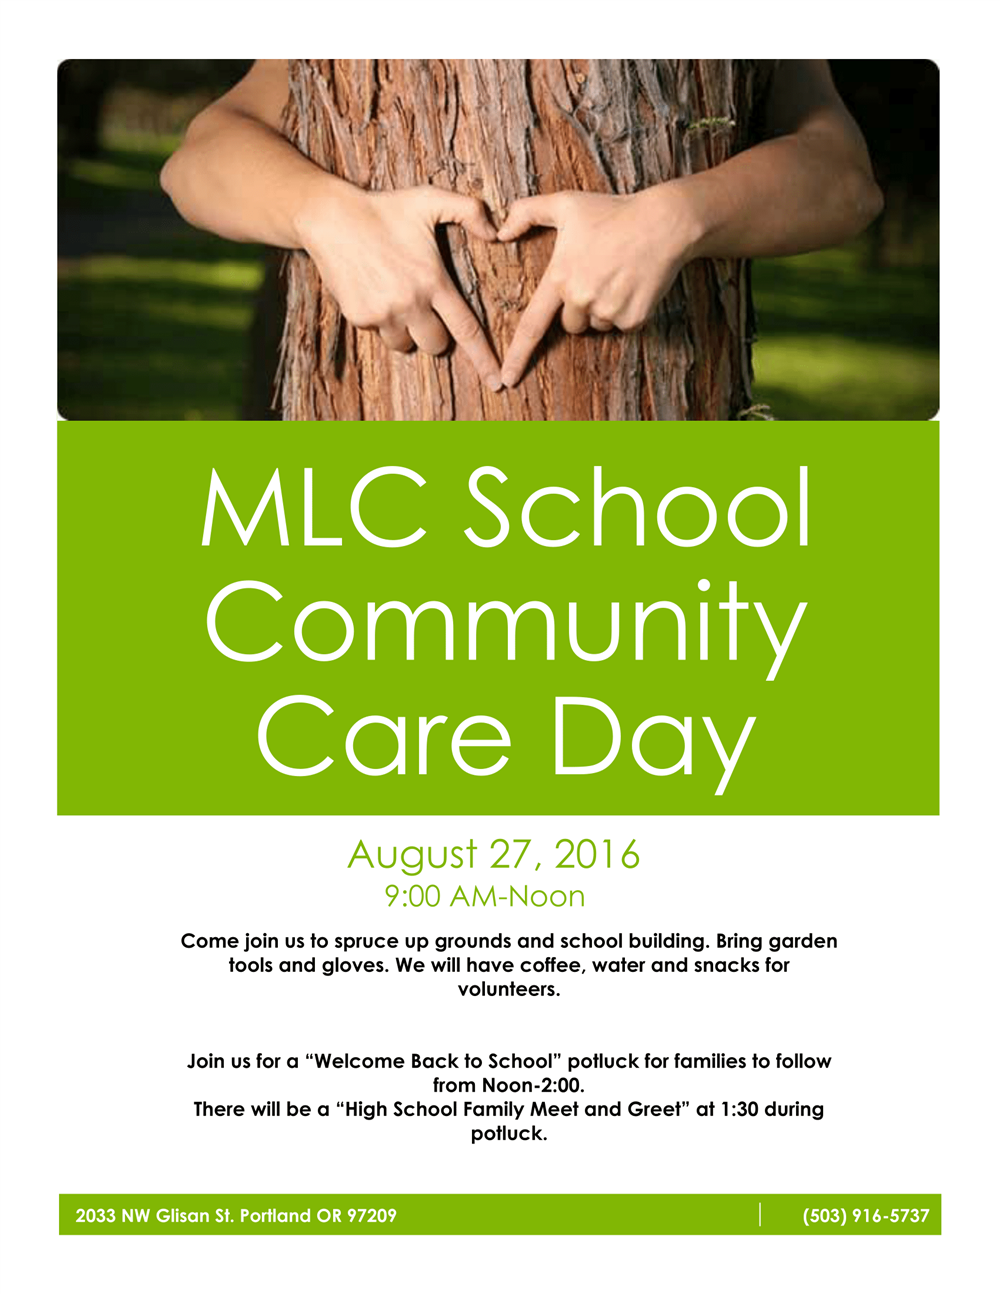 MLC School Community Care Day Flyer